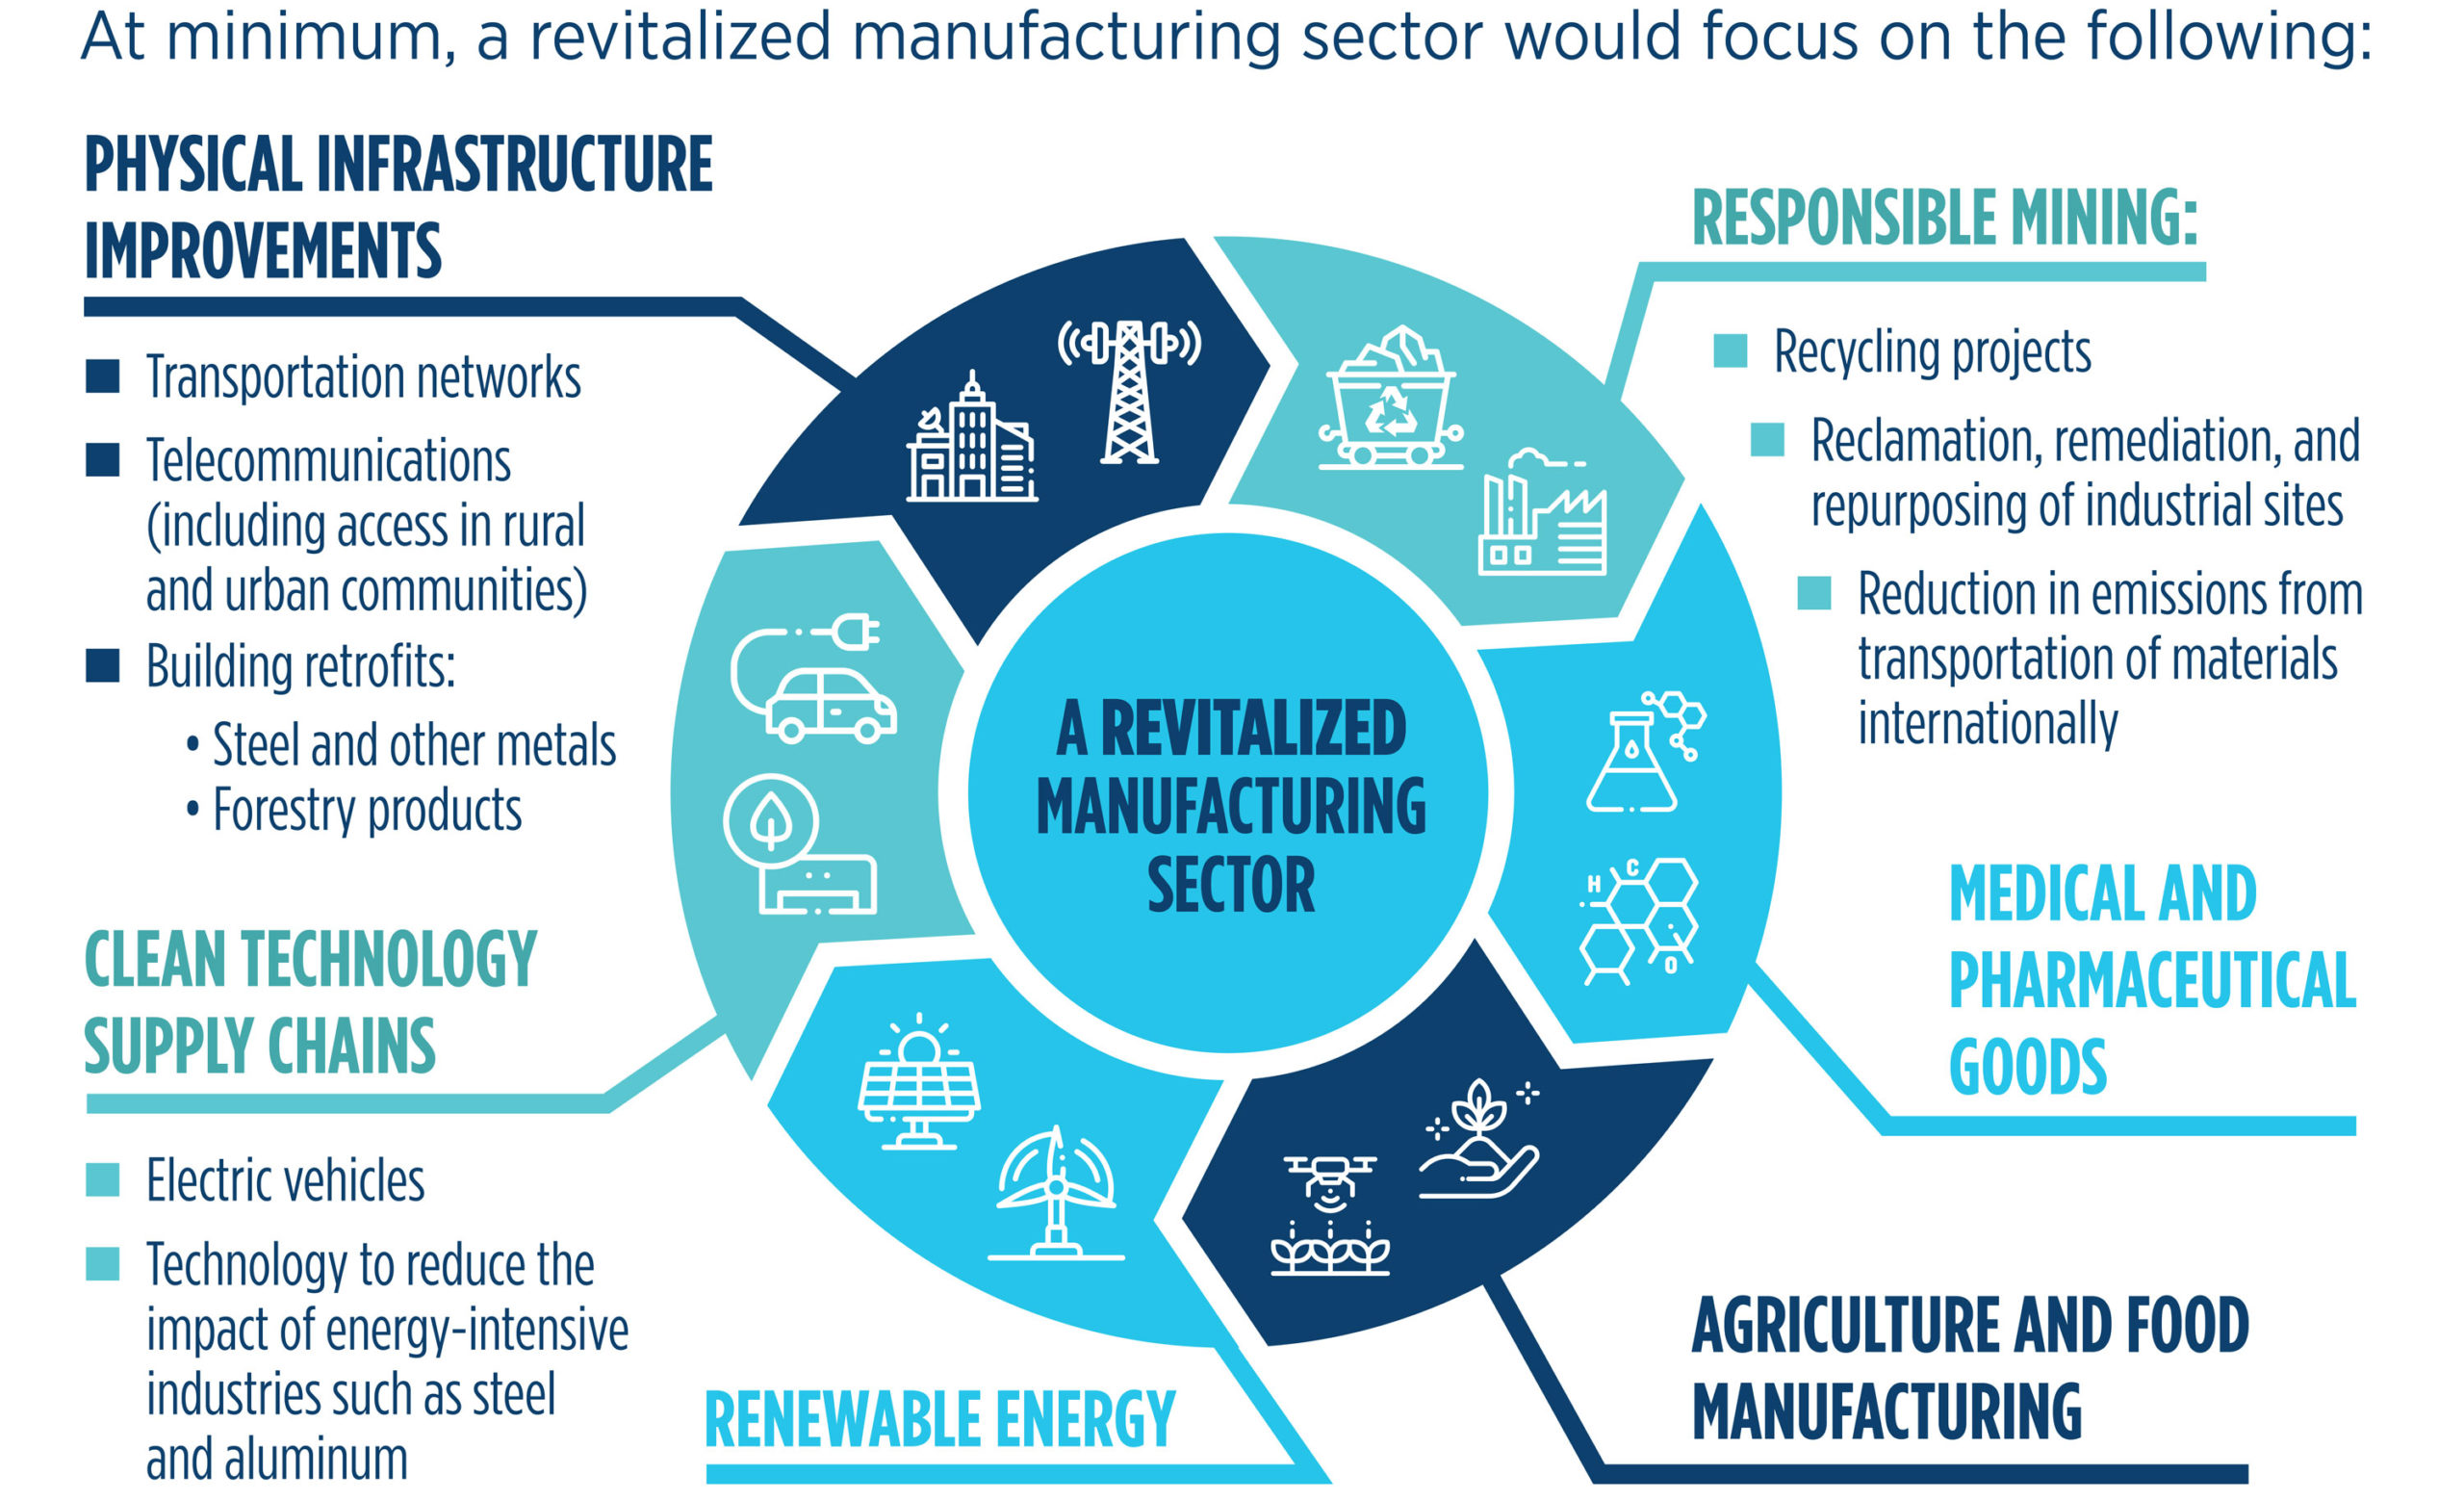 :revitalized-manufacturing-sector (EN).jpg